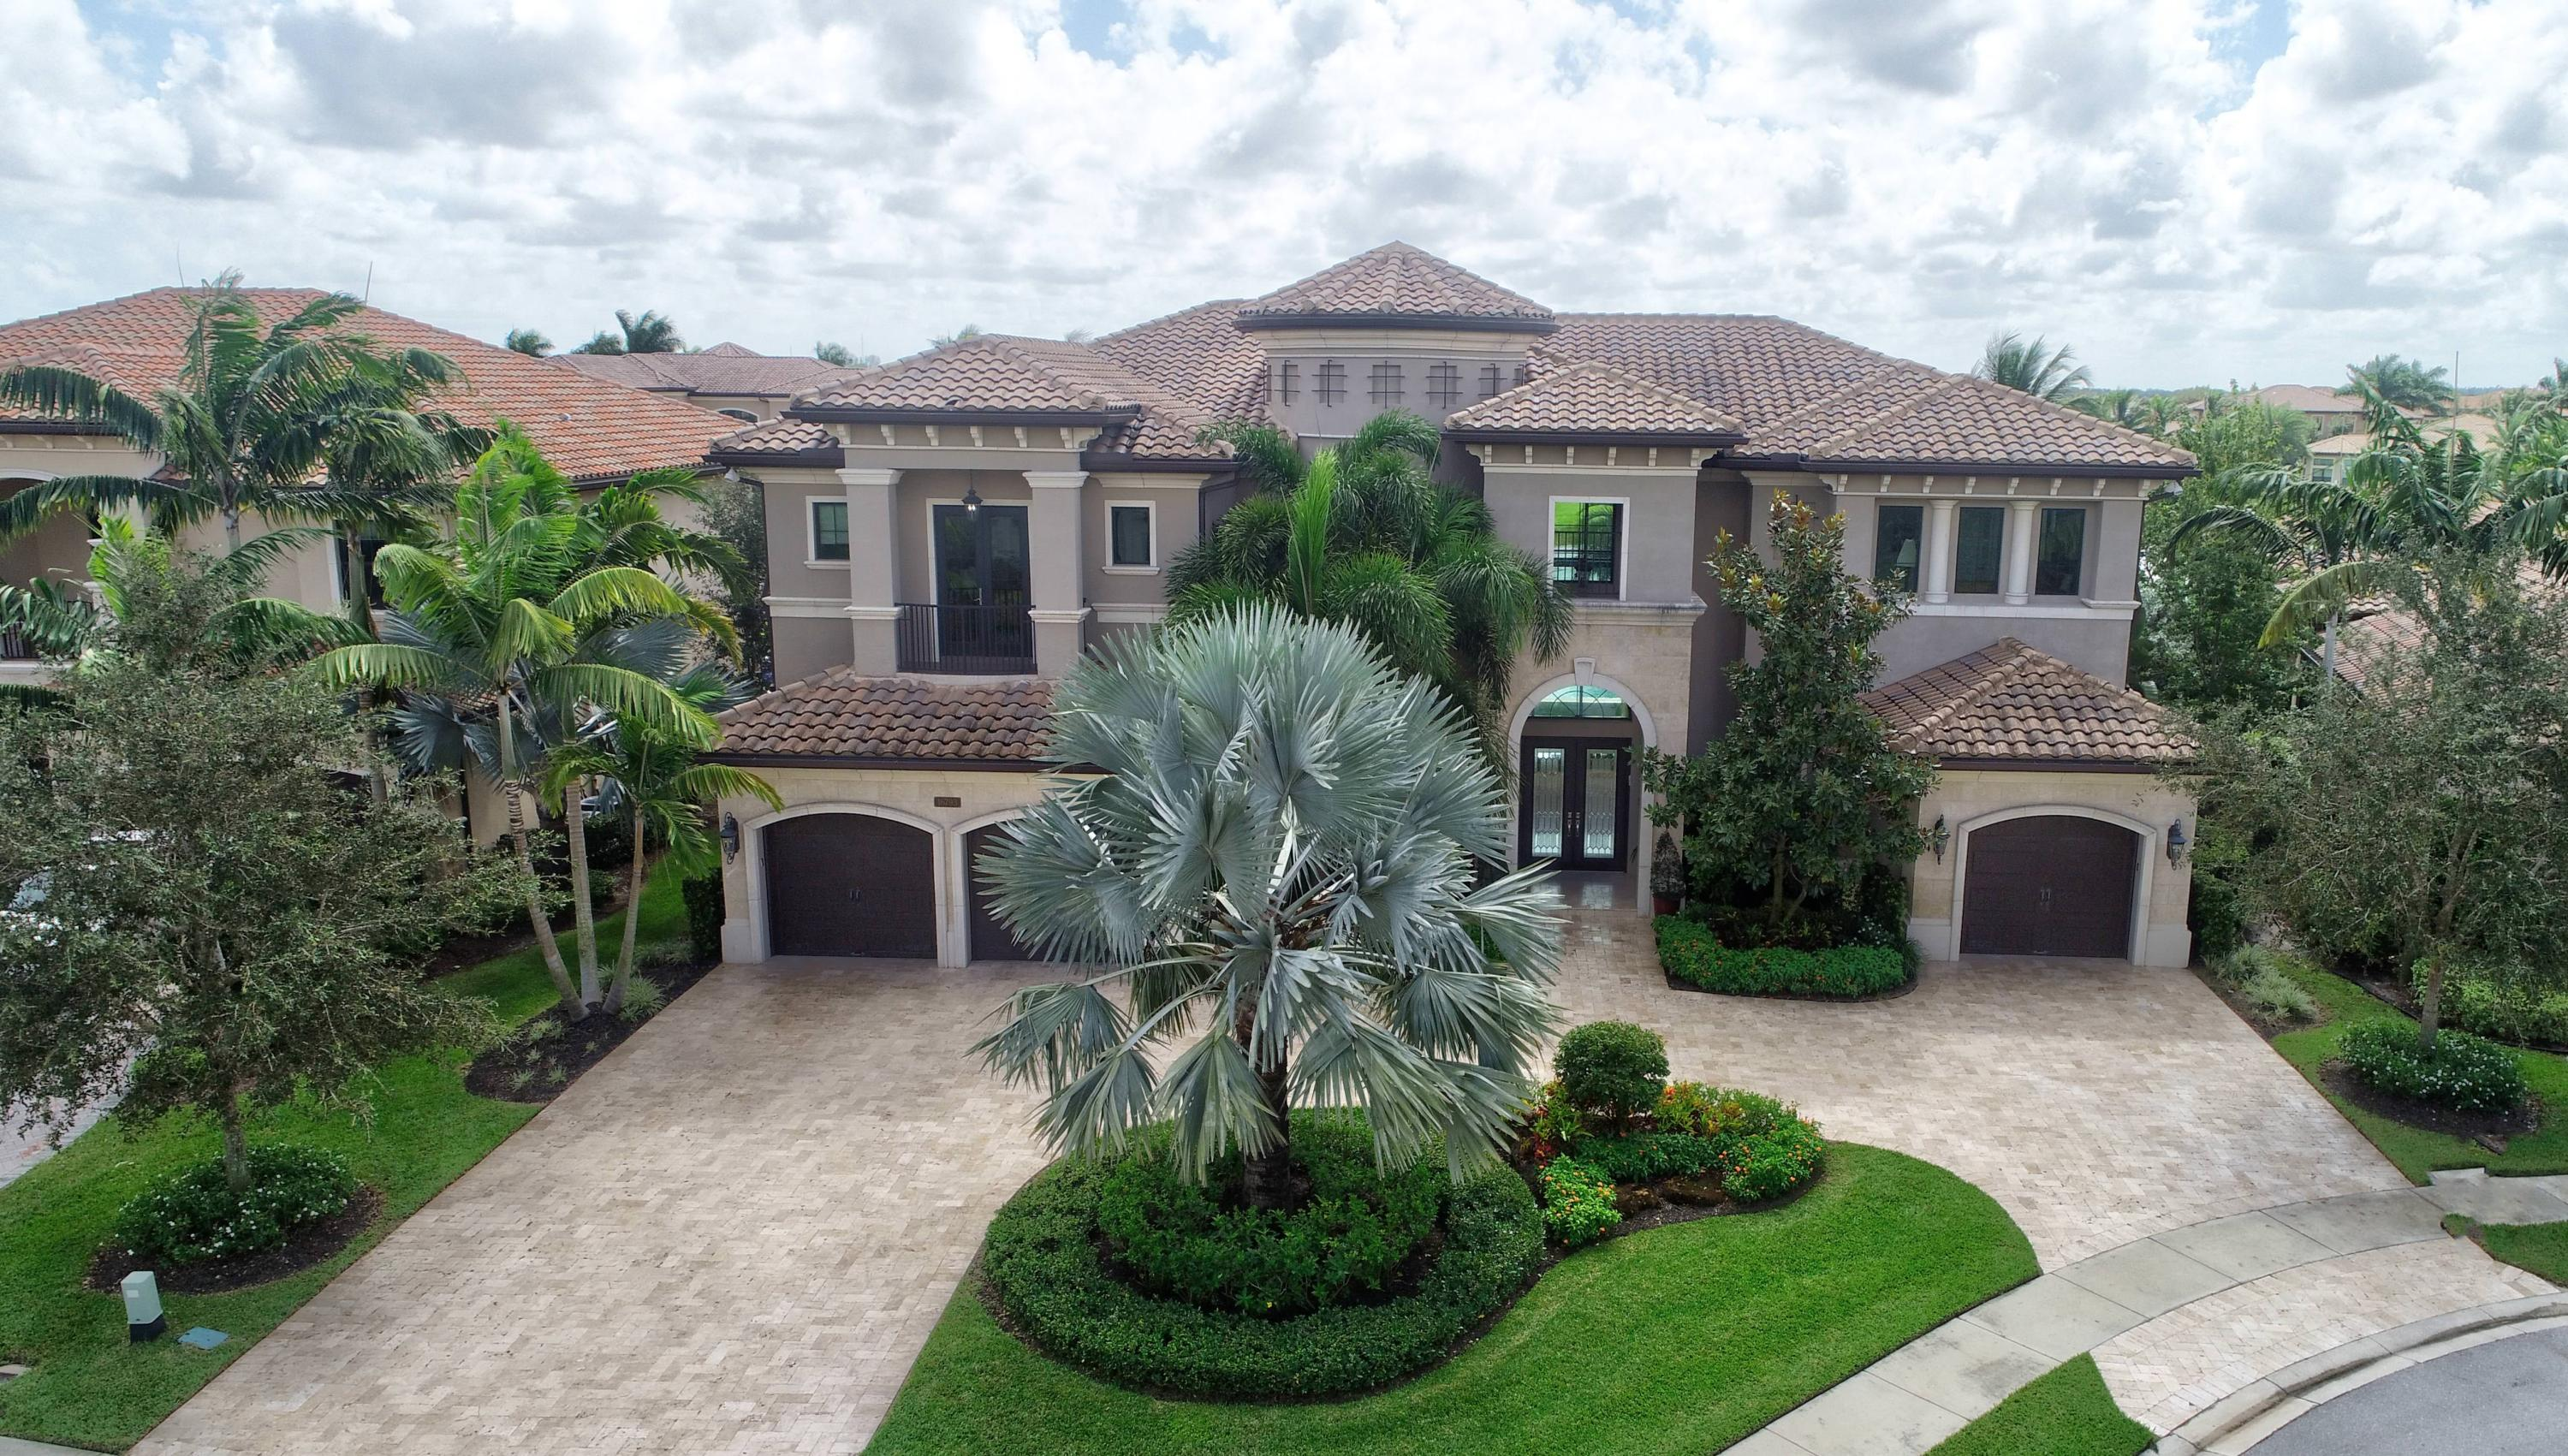 16793 Crown Bridge Drive, Delray Beach, Florida 33446, 6 Bedrooms Bedrooms, ,6.1 BathroomsBathrooms,Single Family,For Sale,THE BRIDGES,Crown Bridge,RX-10473914